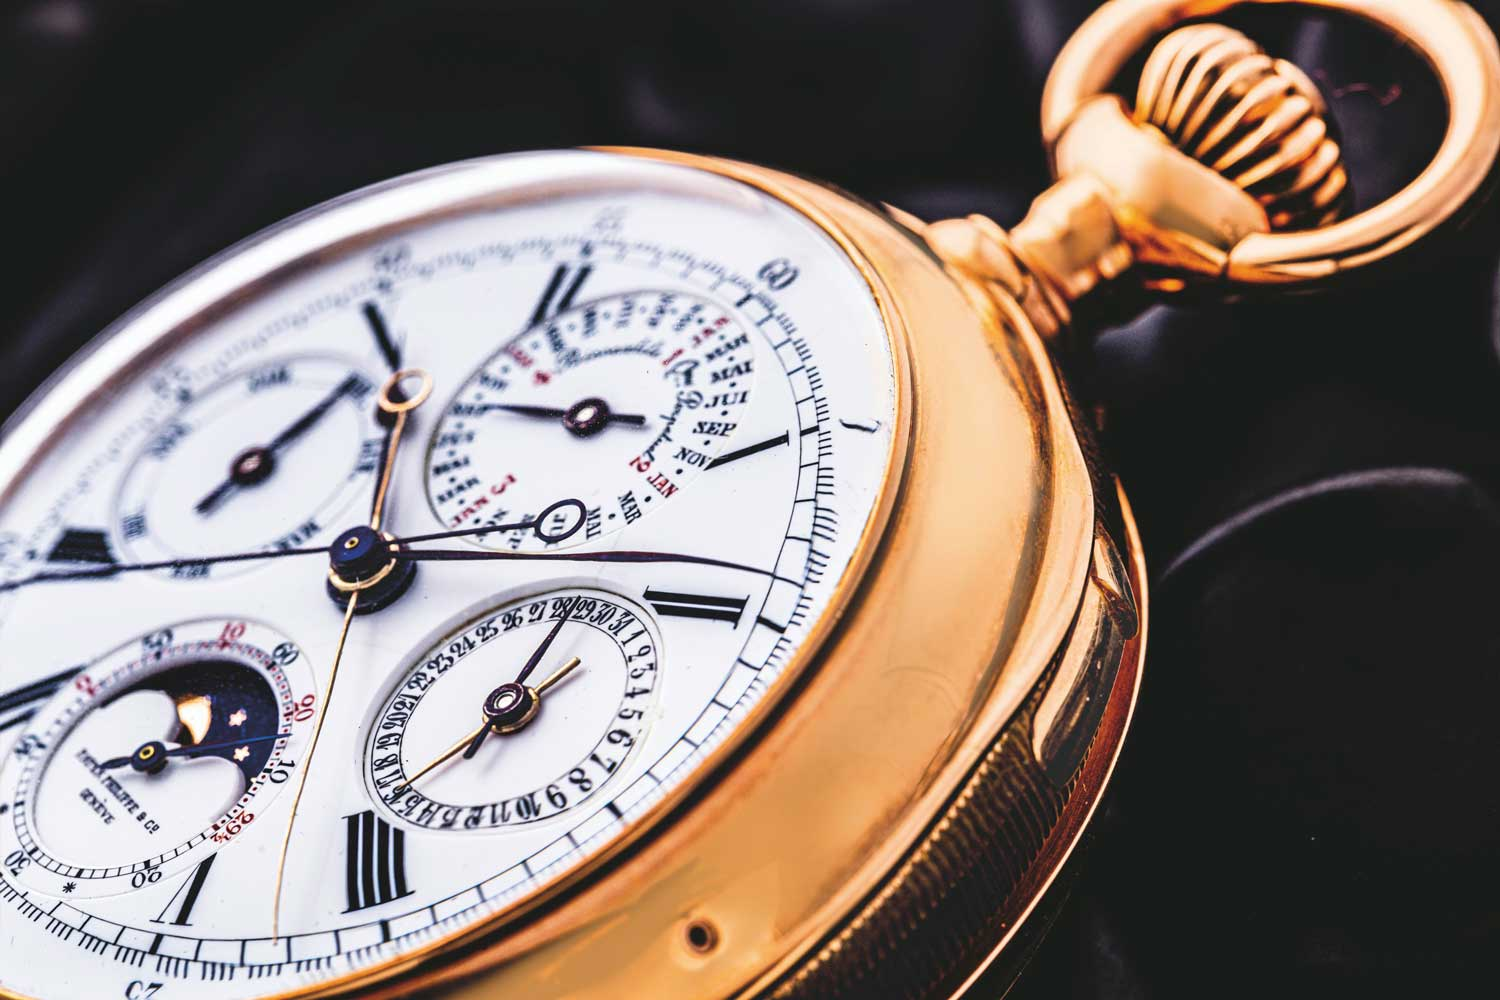 """The Unique Patek Philippe 'Gradowski' Grande Complication sold by Christie's at the """"The Legends of Time """" in May."""